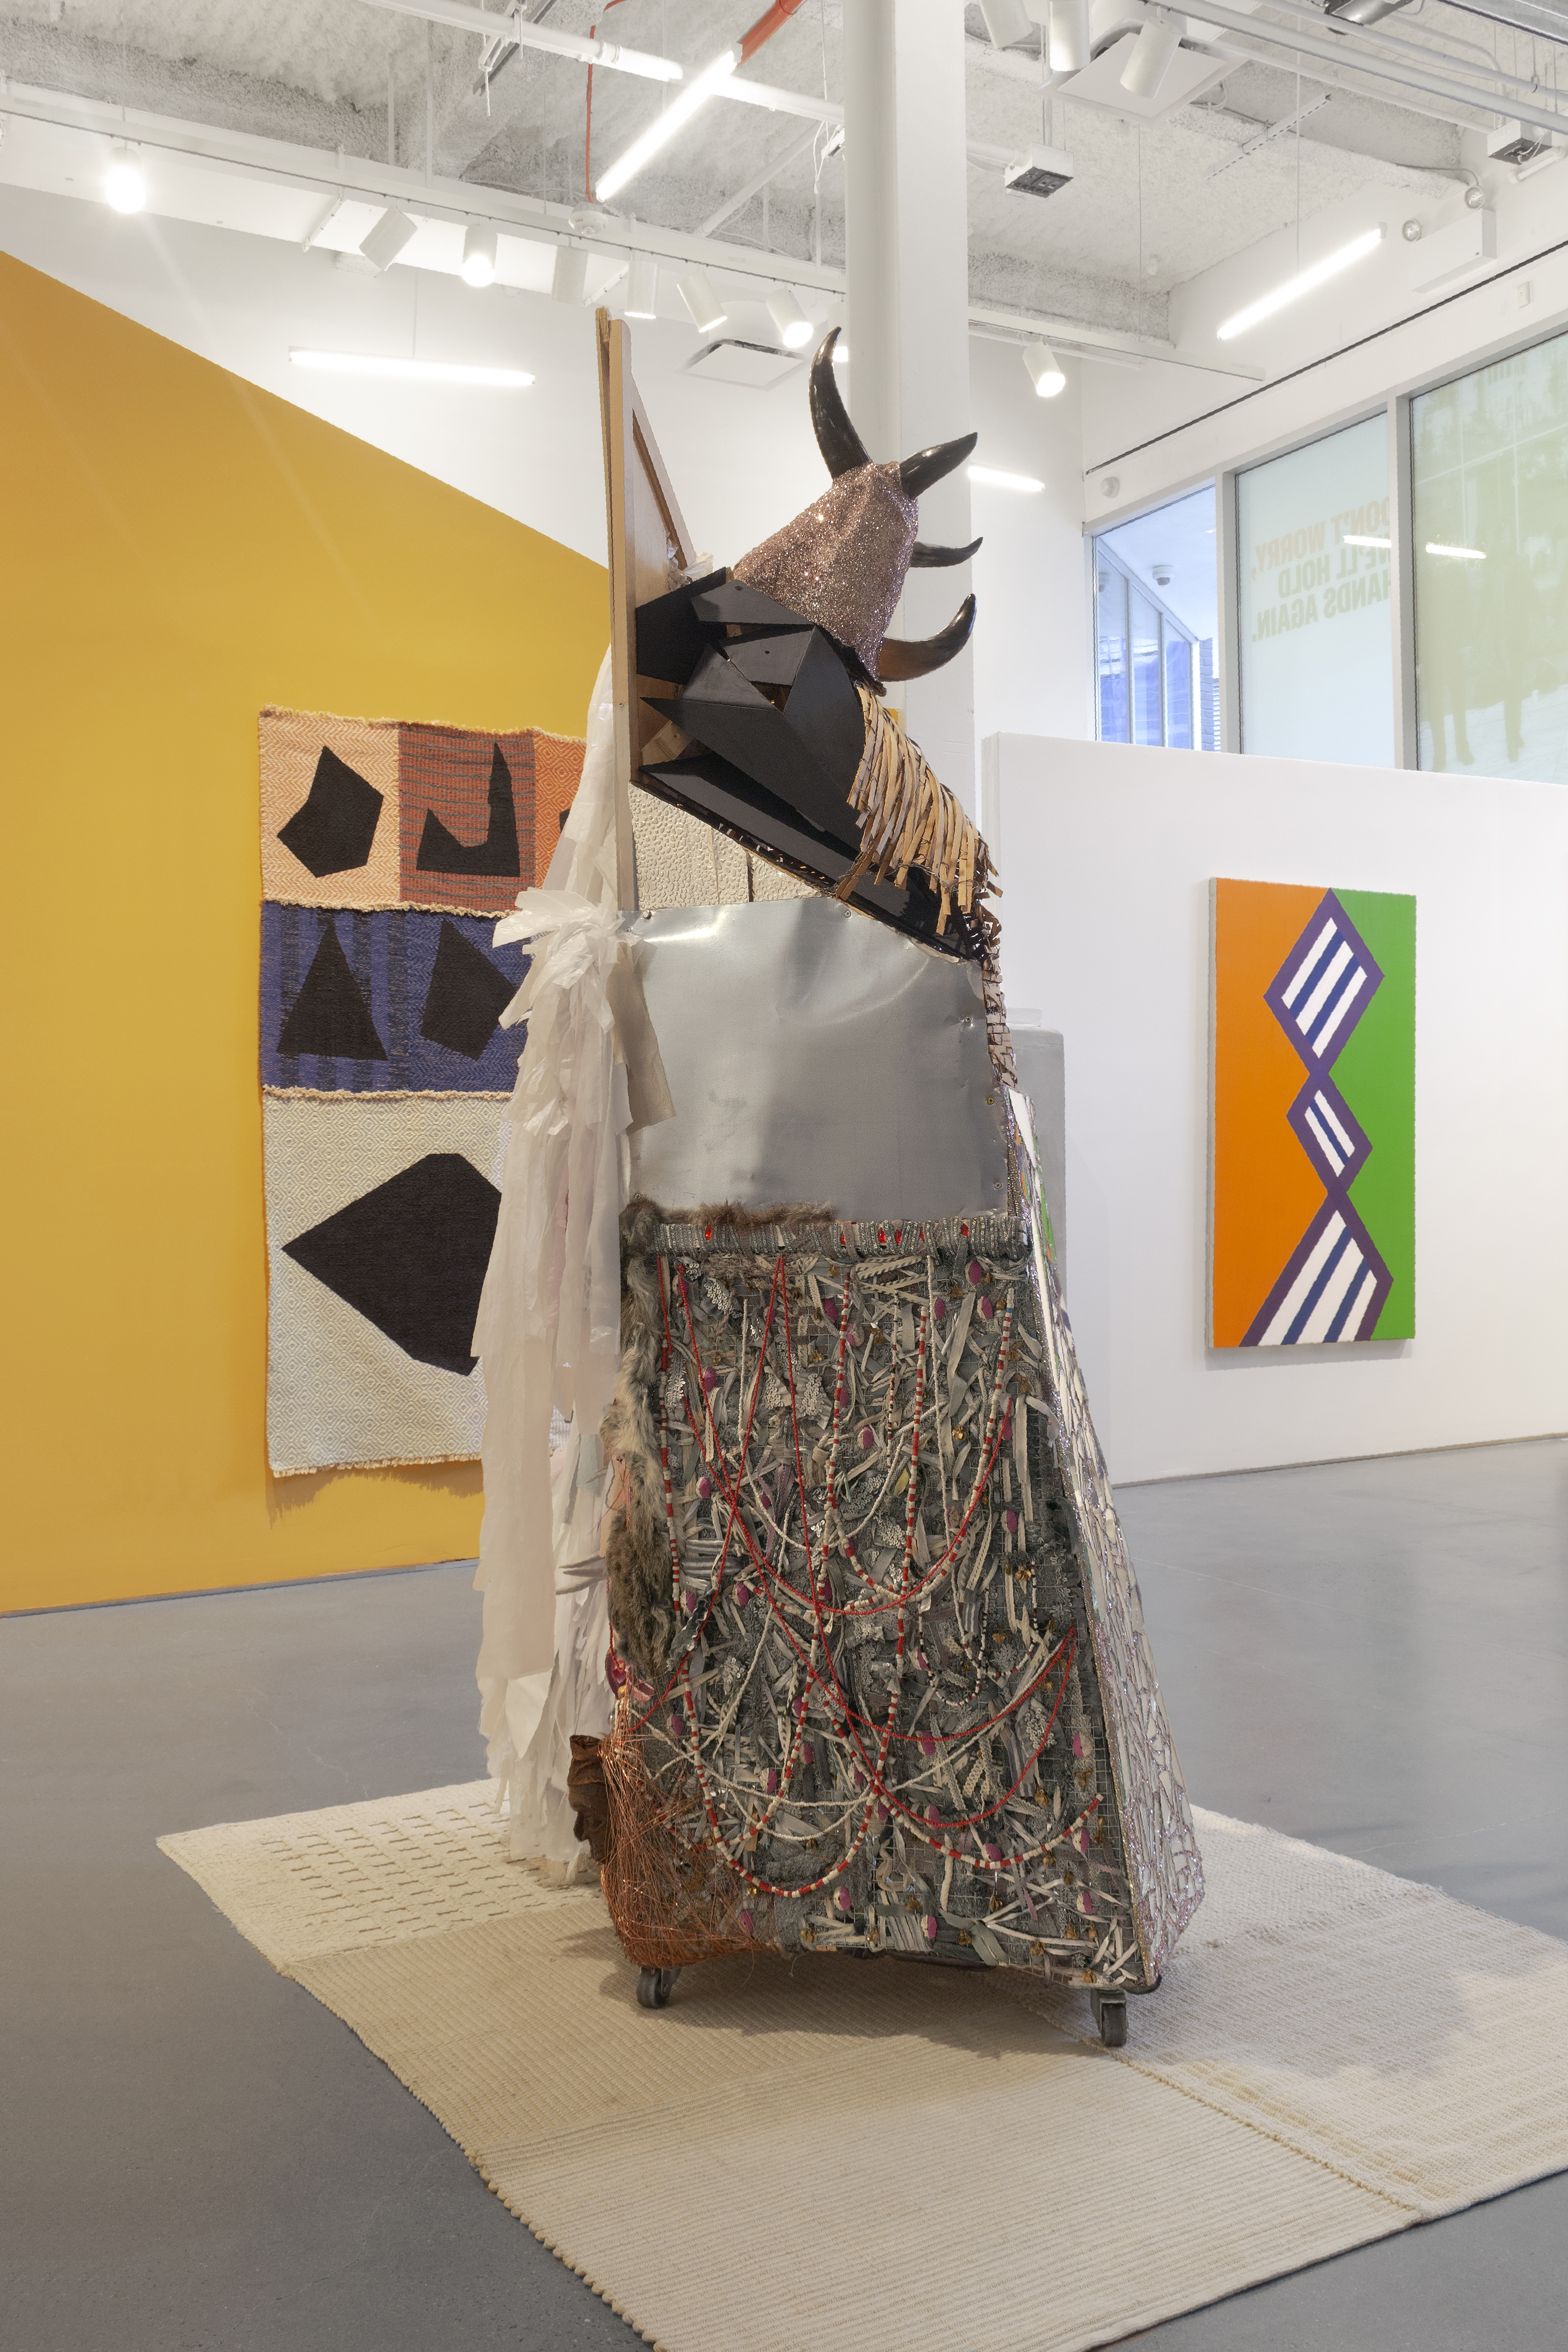 Large sculpture with a wooden frame, draped in fabric, animal fur and beads with deer antlers on top